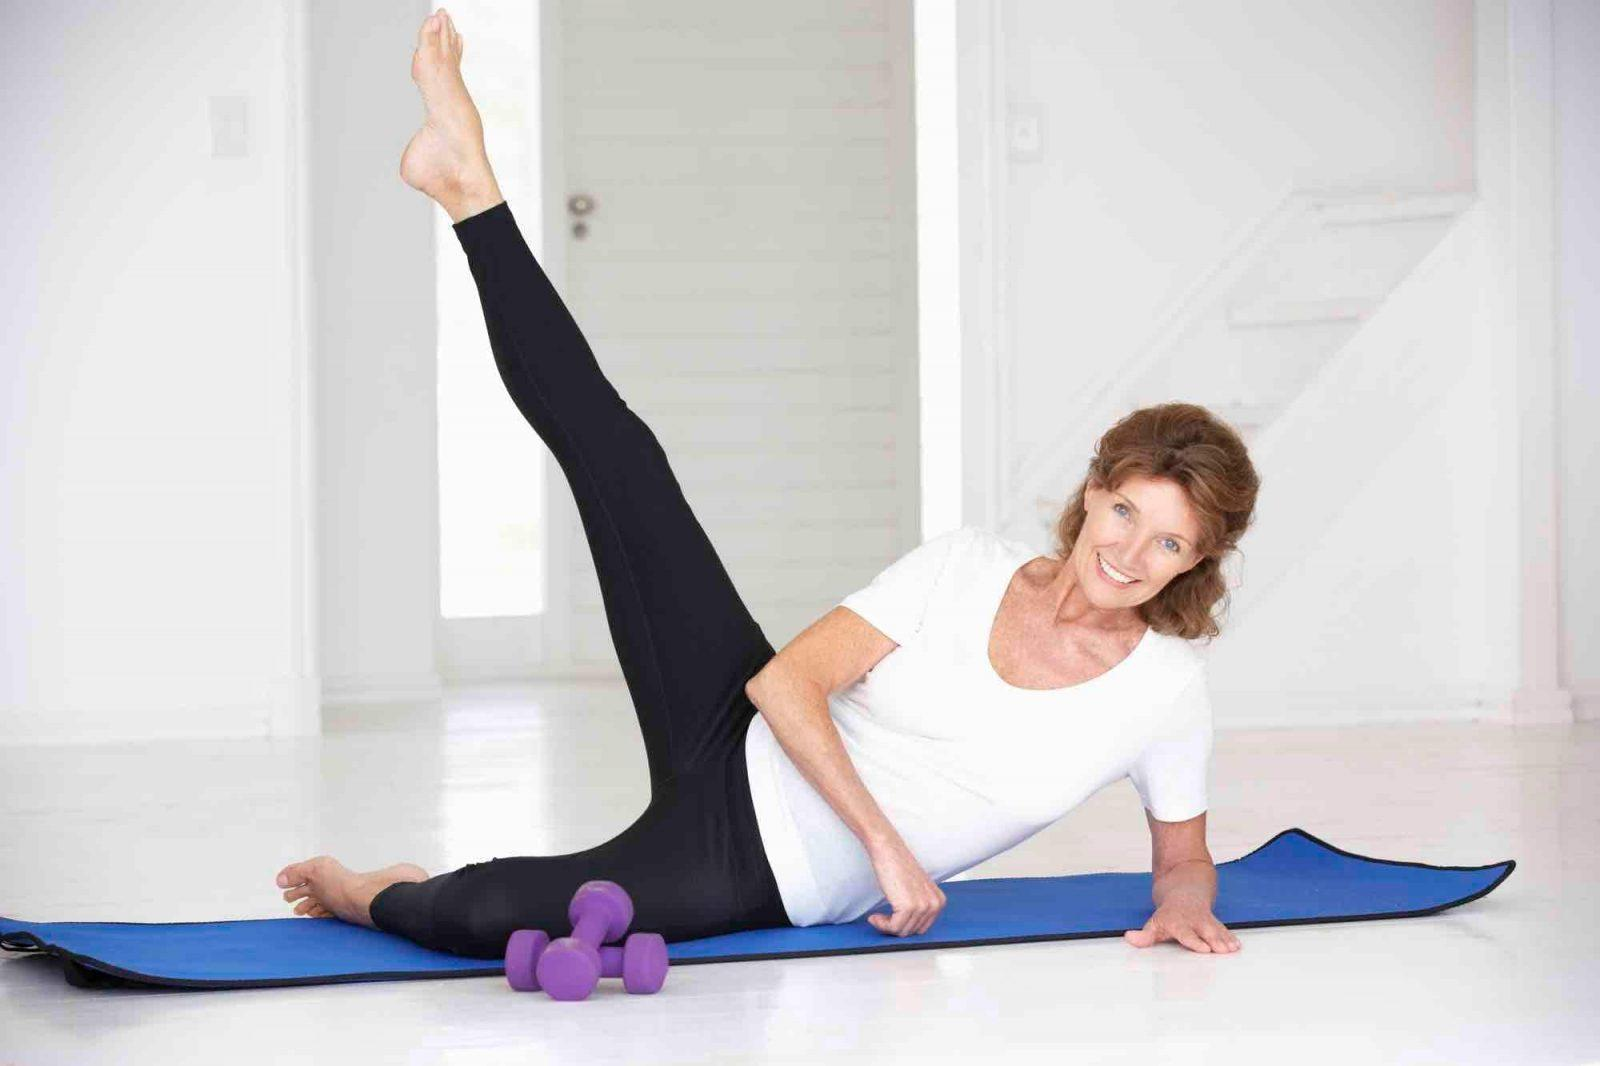 10 Ways to Improve the Health of Our Joints